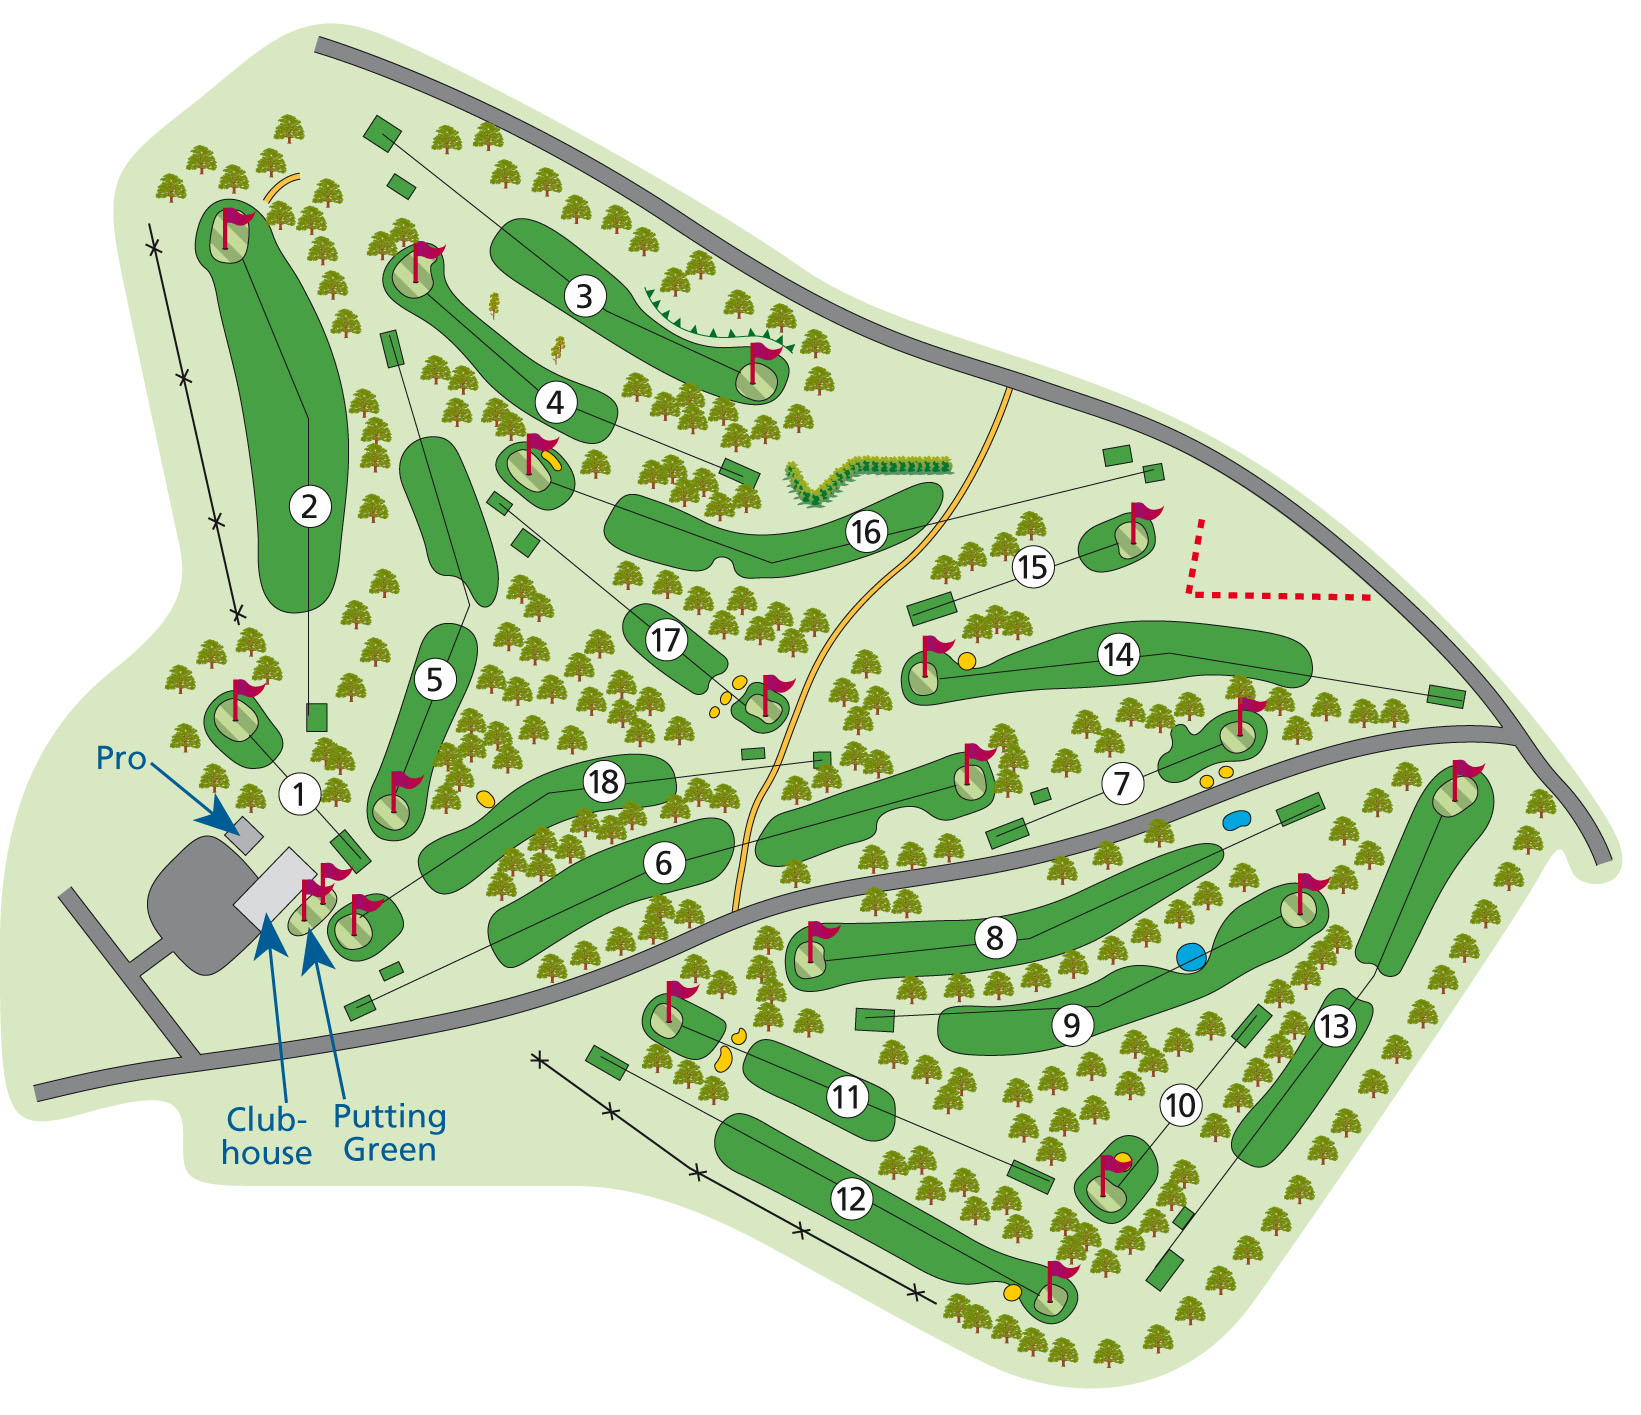 The course plan for Huntercombe Golf Course